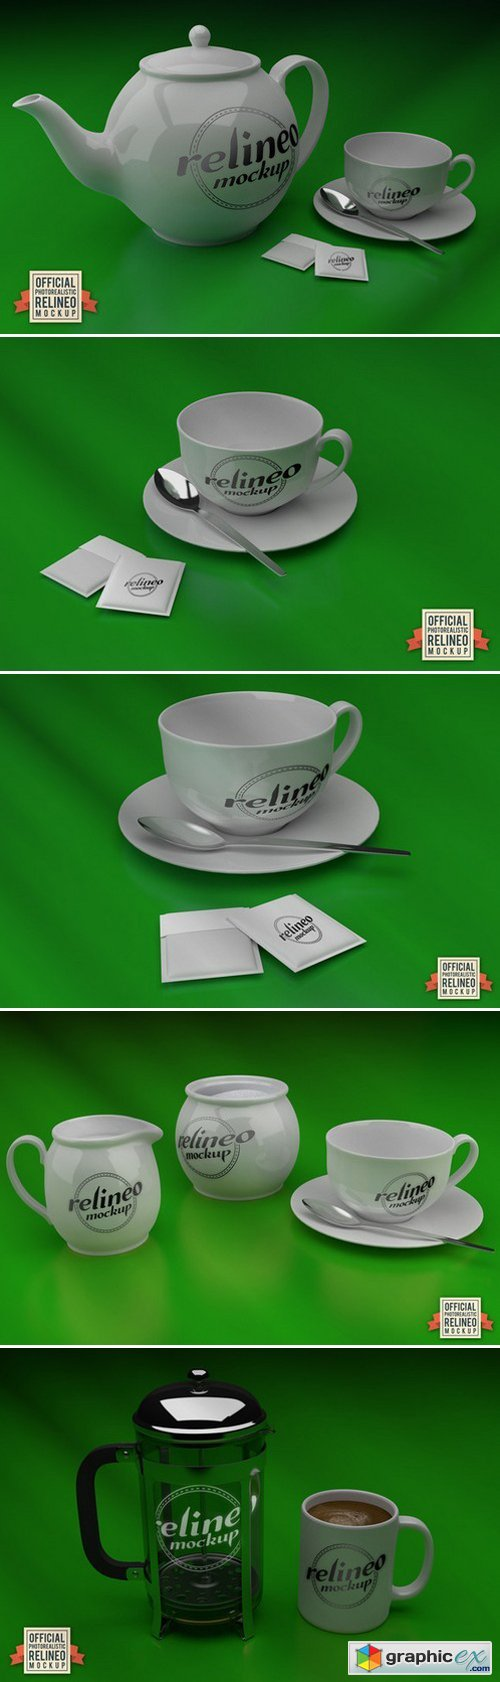 Relineo Tea Cup and Jug Mock-up Pack